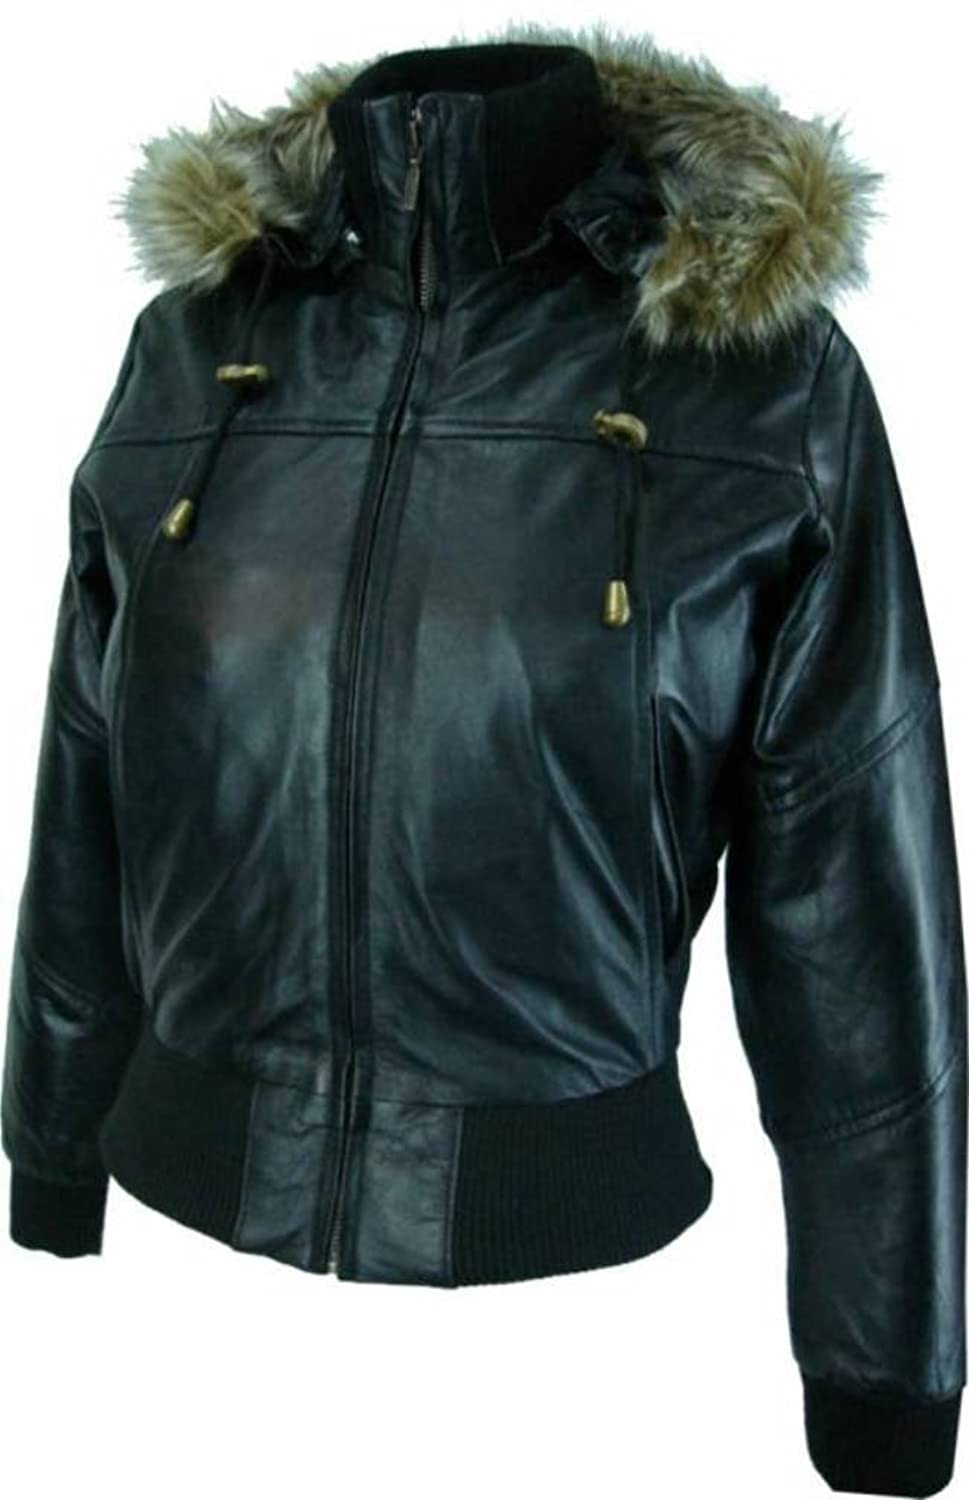 Womens Hooded bomber jacket - Real Leather Jacket- Black # M1 ...